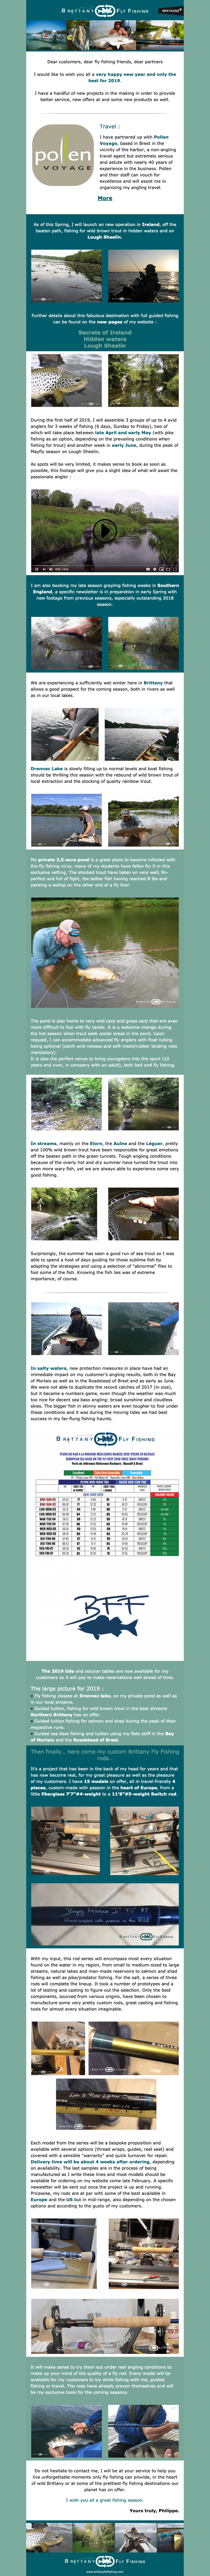 brittany-fly-fishing-actu-news-2019